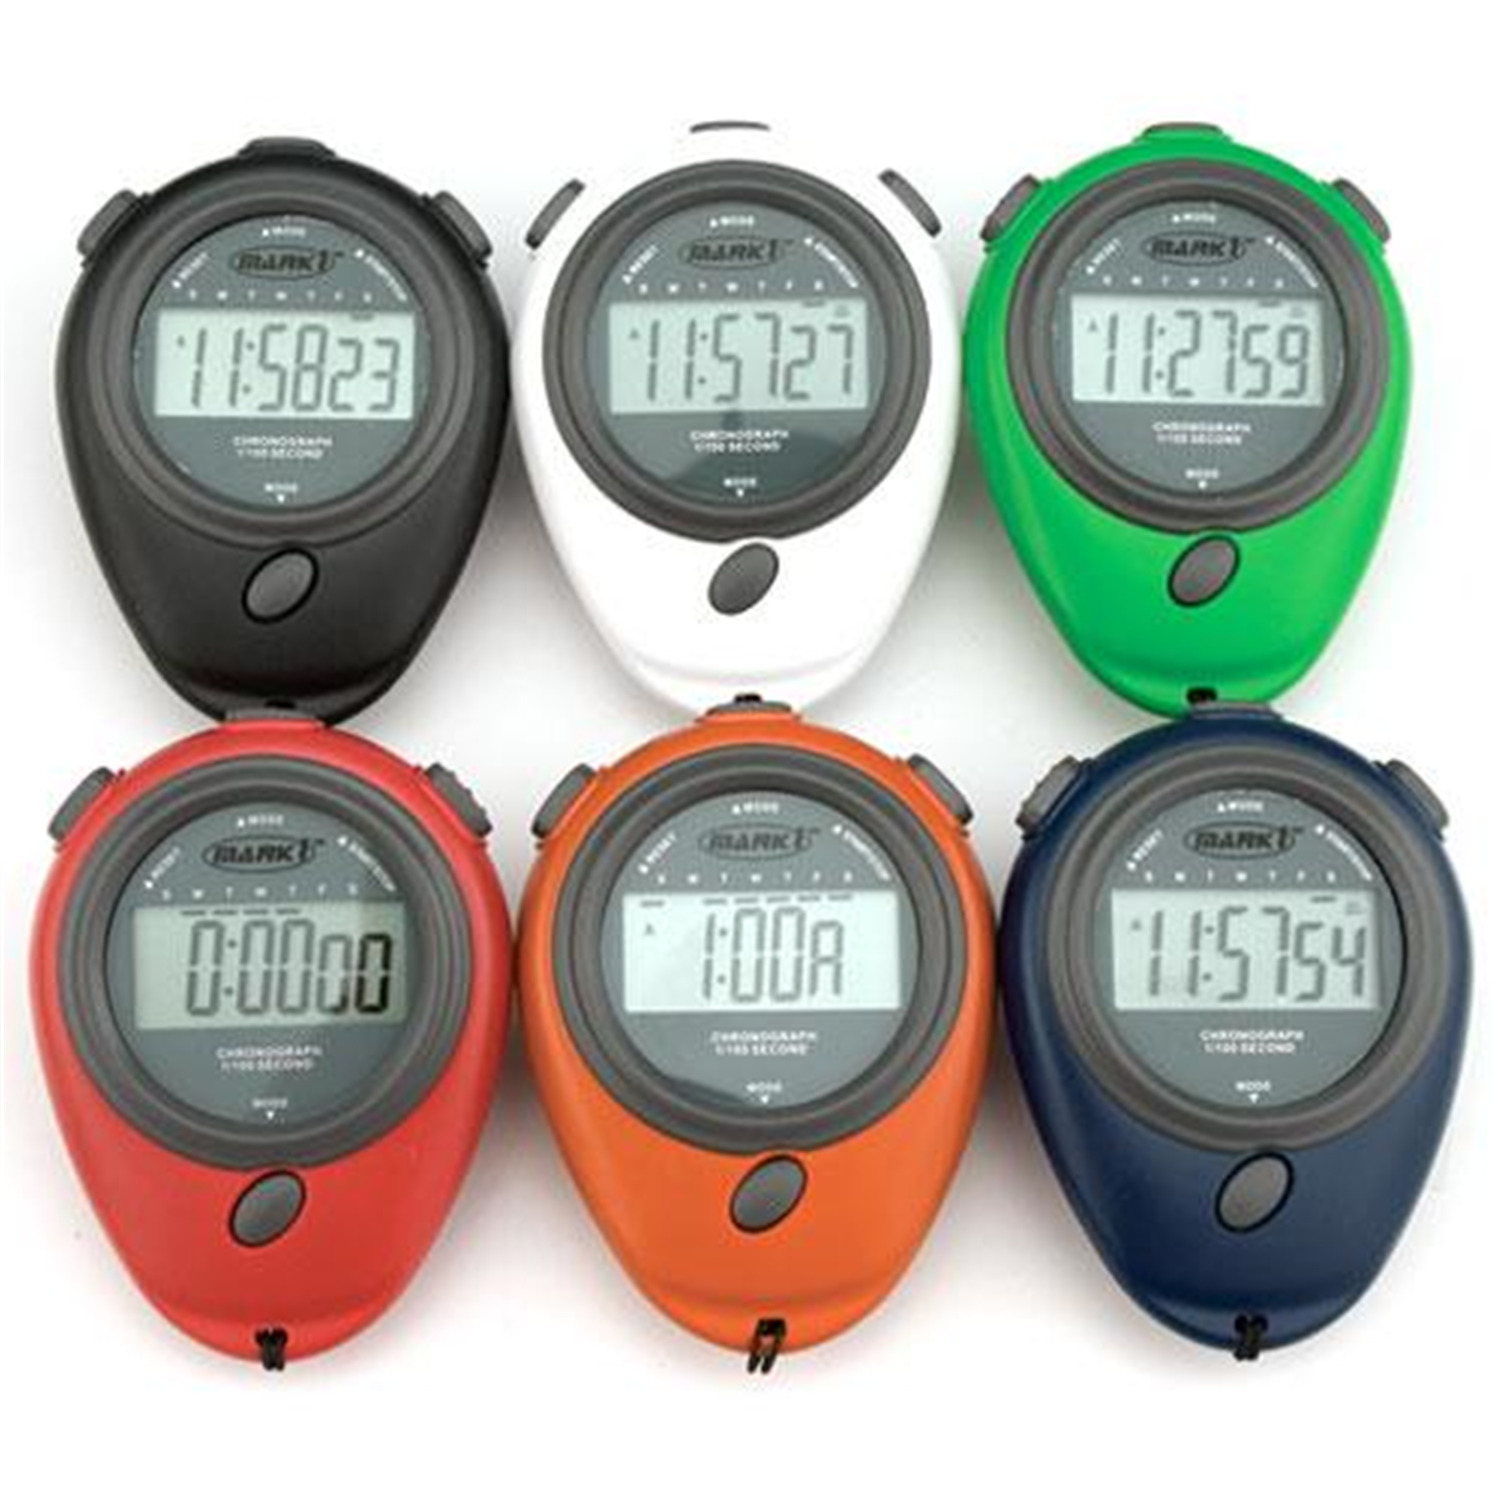 Mark 1 Economy Stopwatch Prism Pack - [1266696]